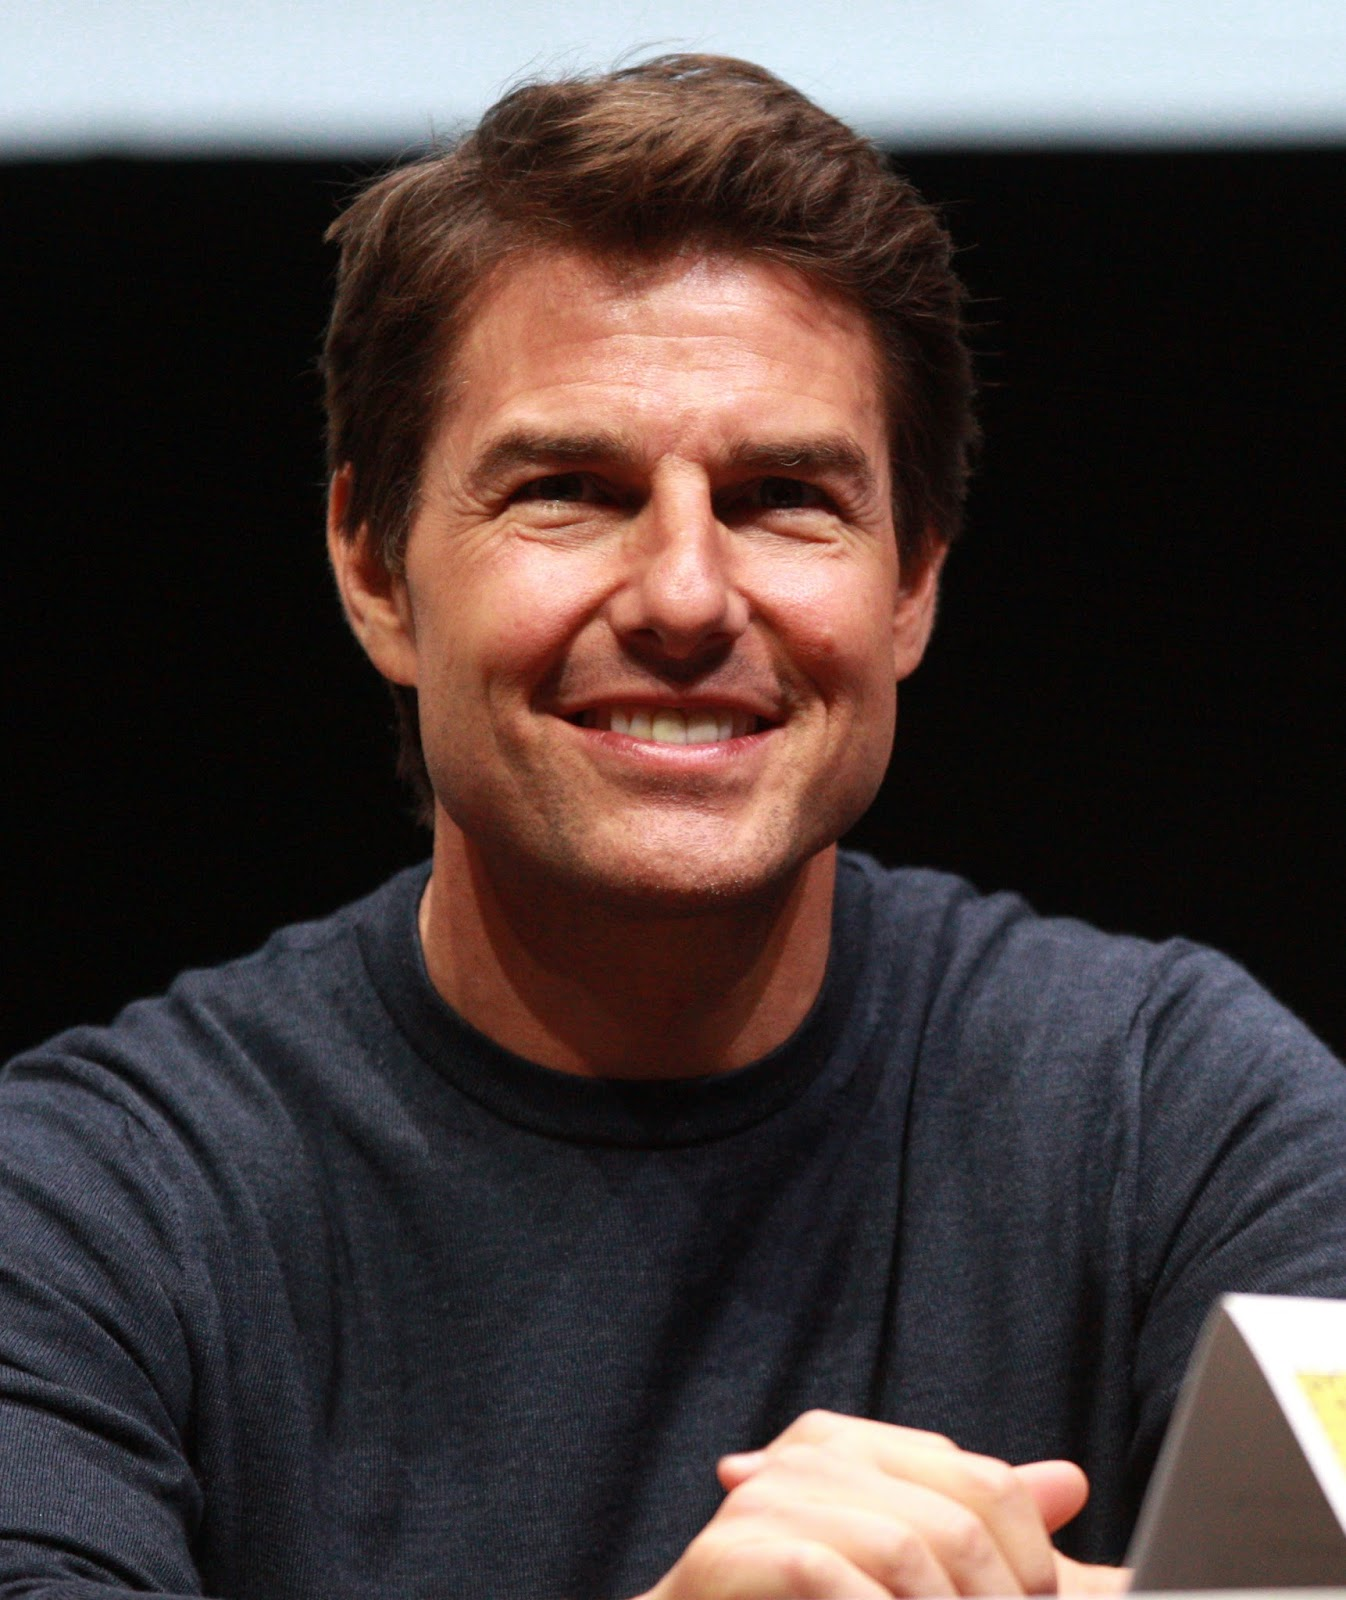 Imagenes de Tom Cruise